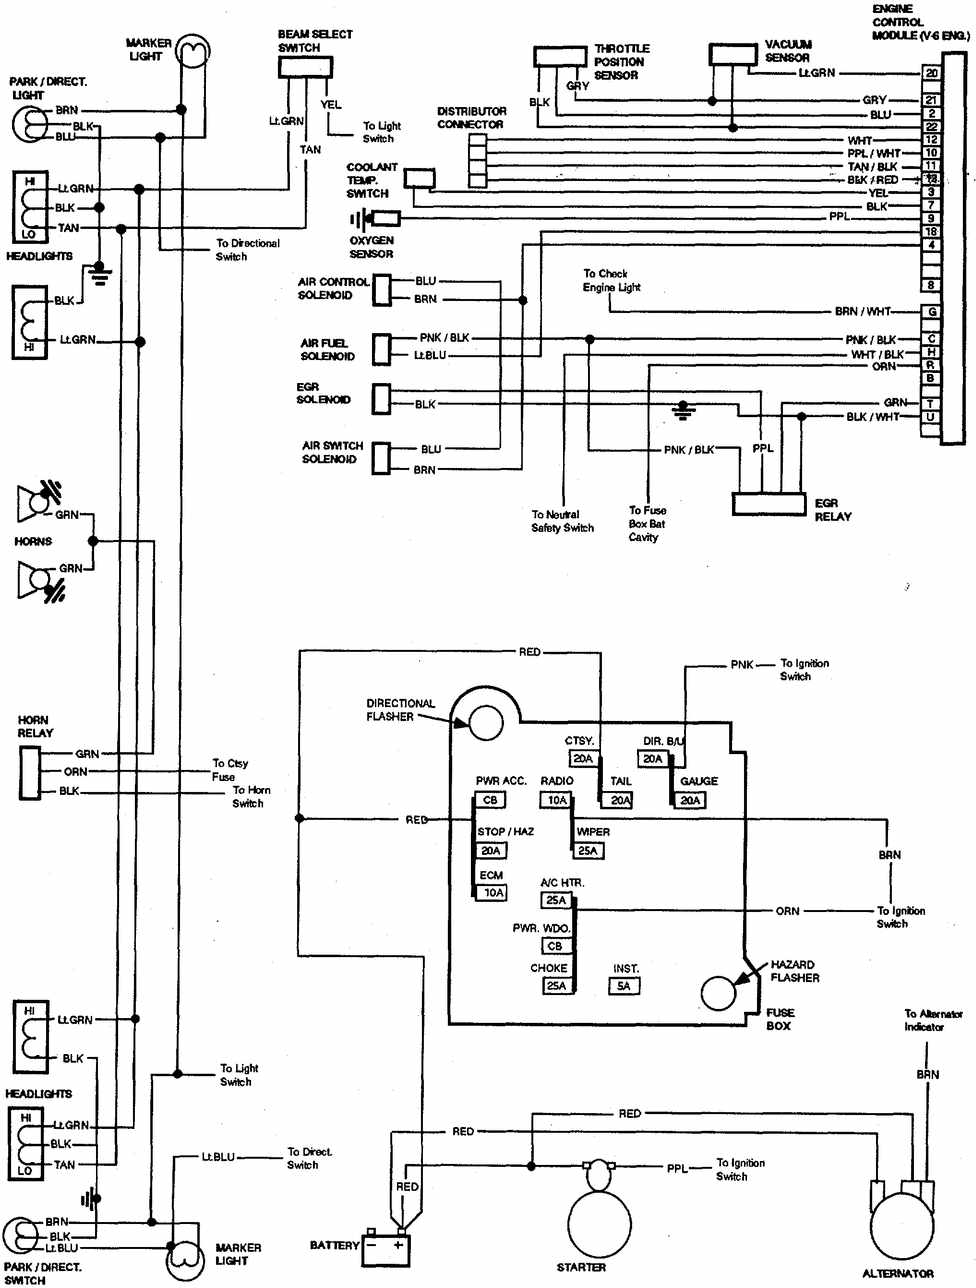 medium resolution of 06 ex500 wiring diagram